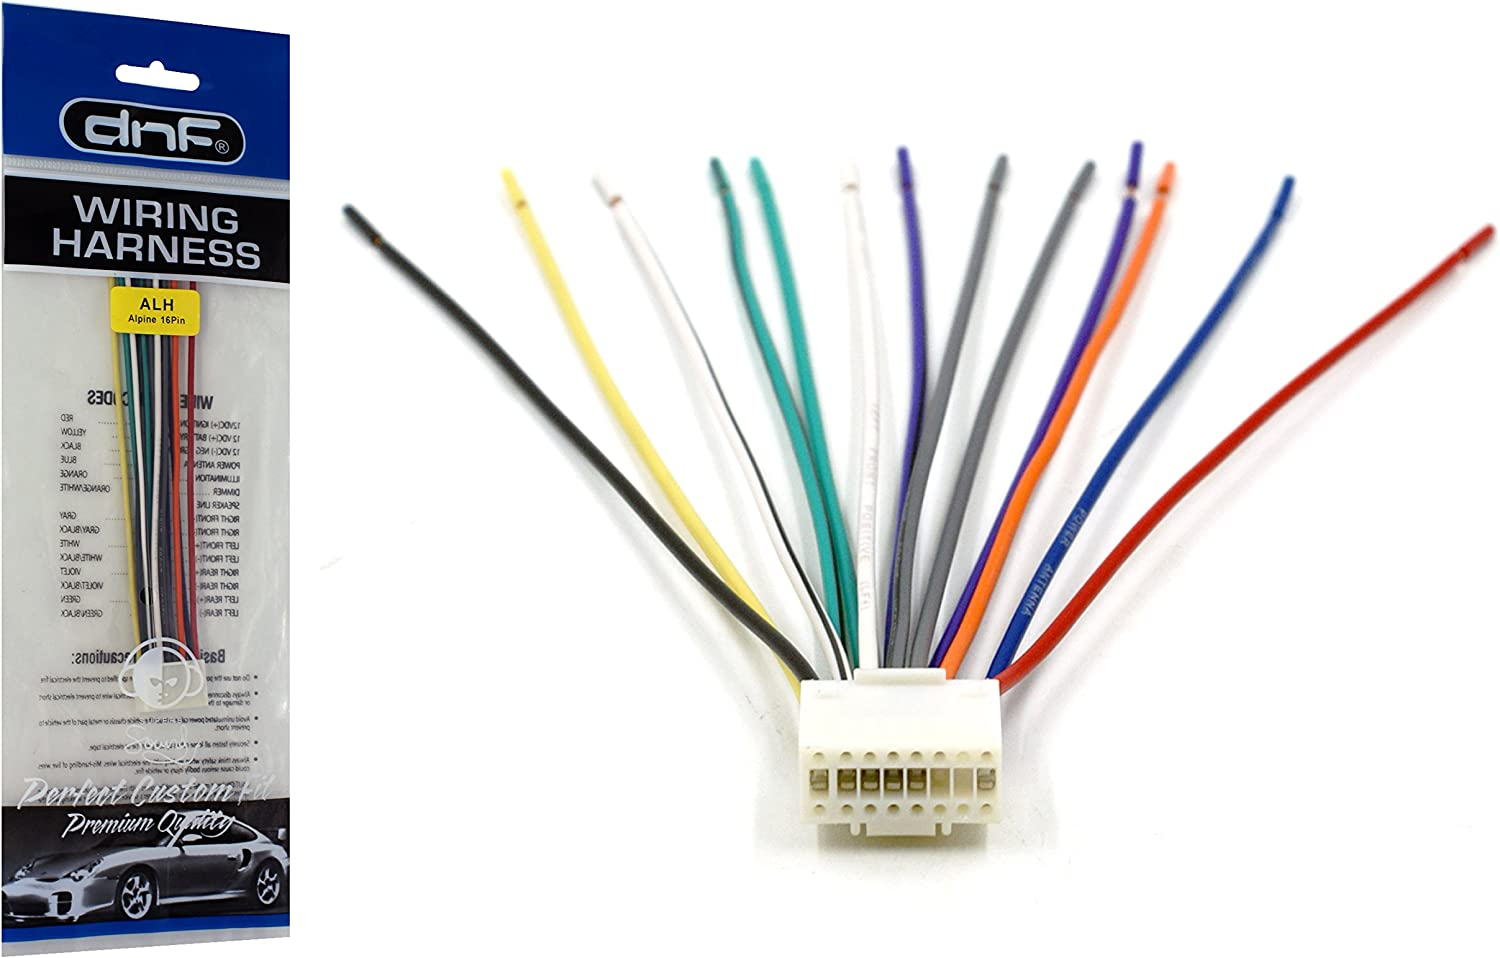 [SCHEMATICS_4US]  Amazon.com: DNF Alpine Wiring Harness TDM-7545 TDM-7555 TDM-7574  TDM-7580-100% Copper Wires!: Automotive | Alpine Wire Harness |  | Amazon.com